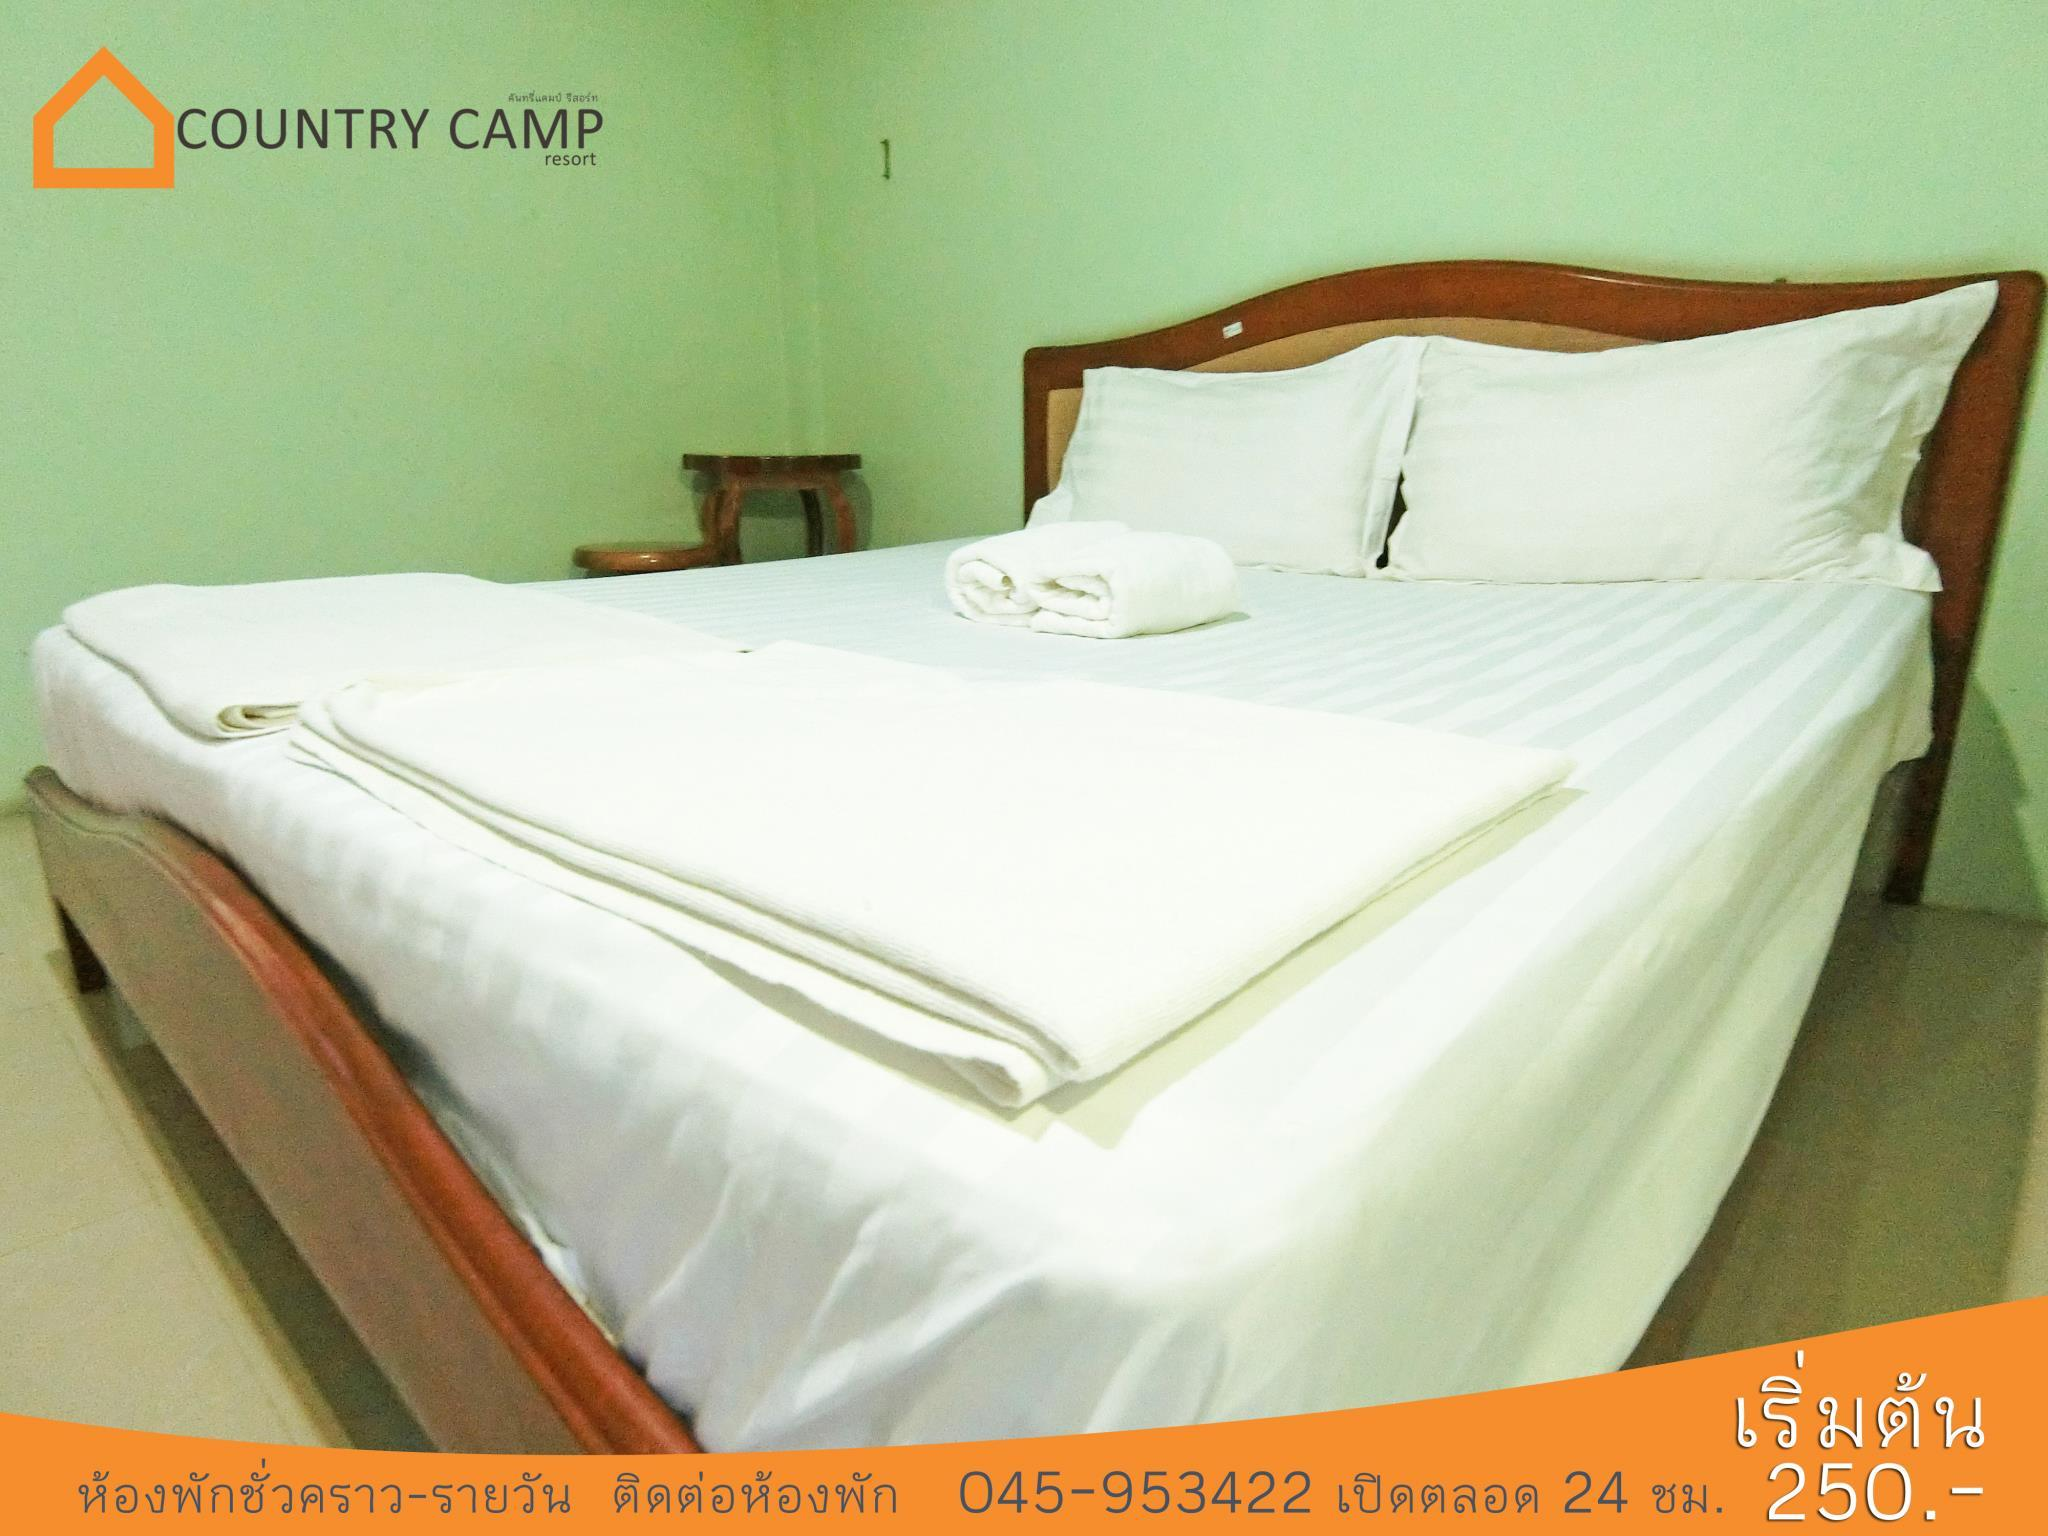 Country camp